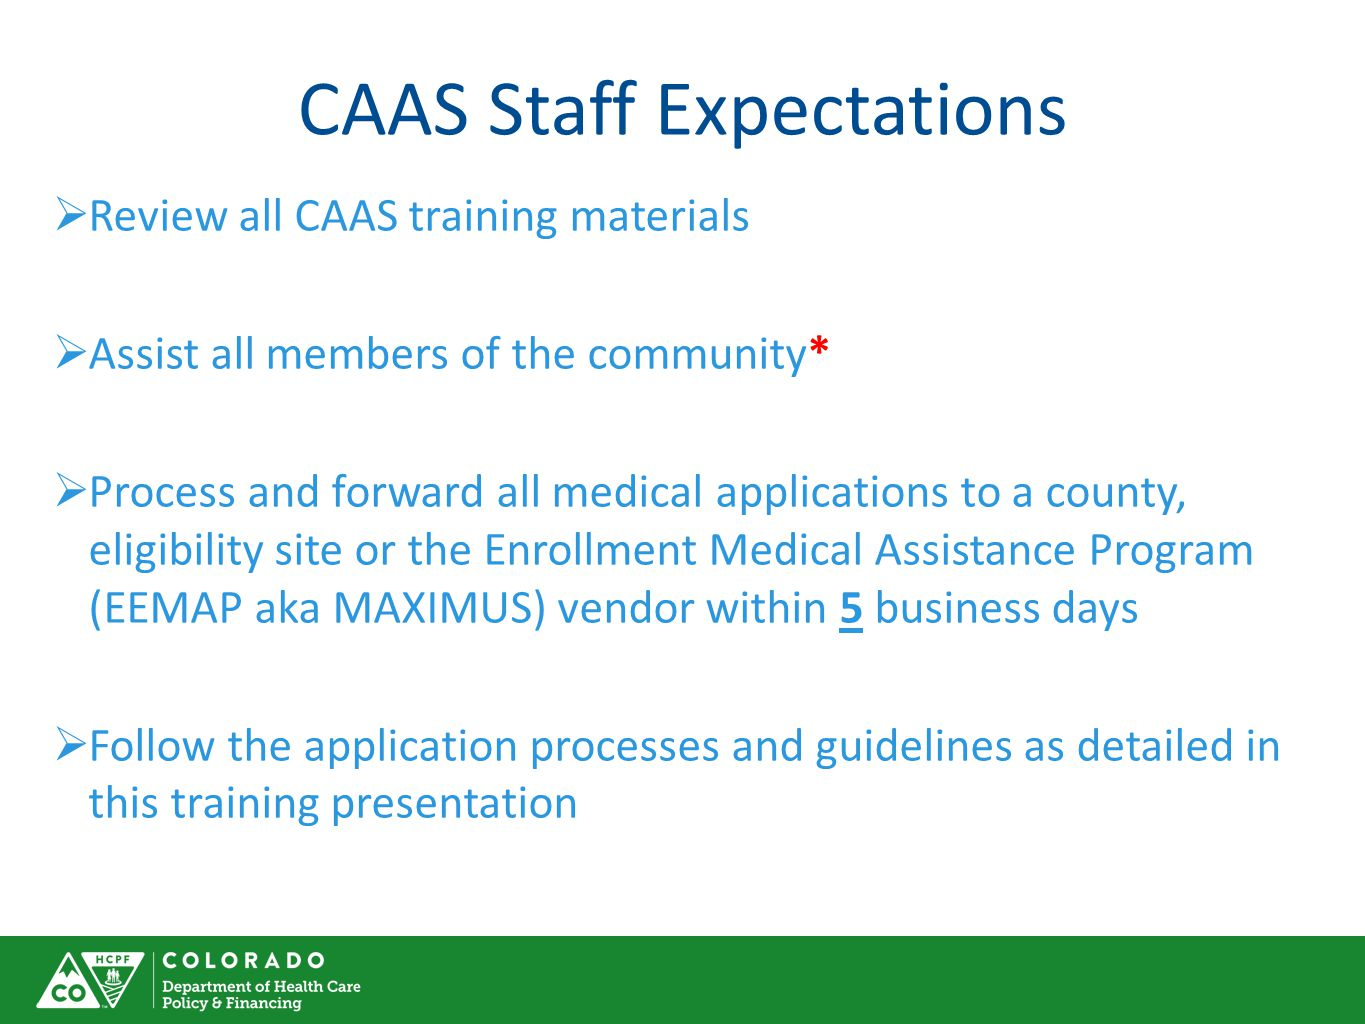 CAAS Staff Expectations